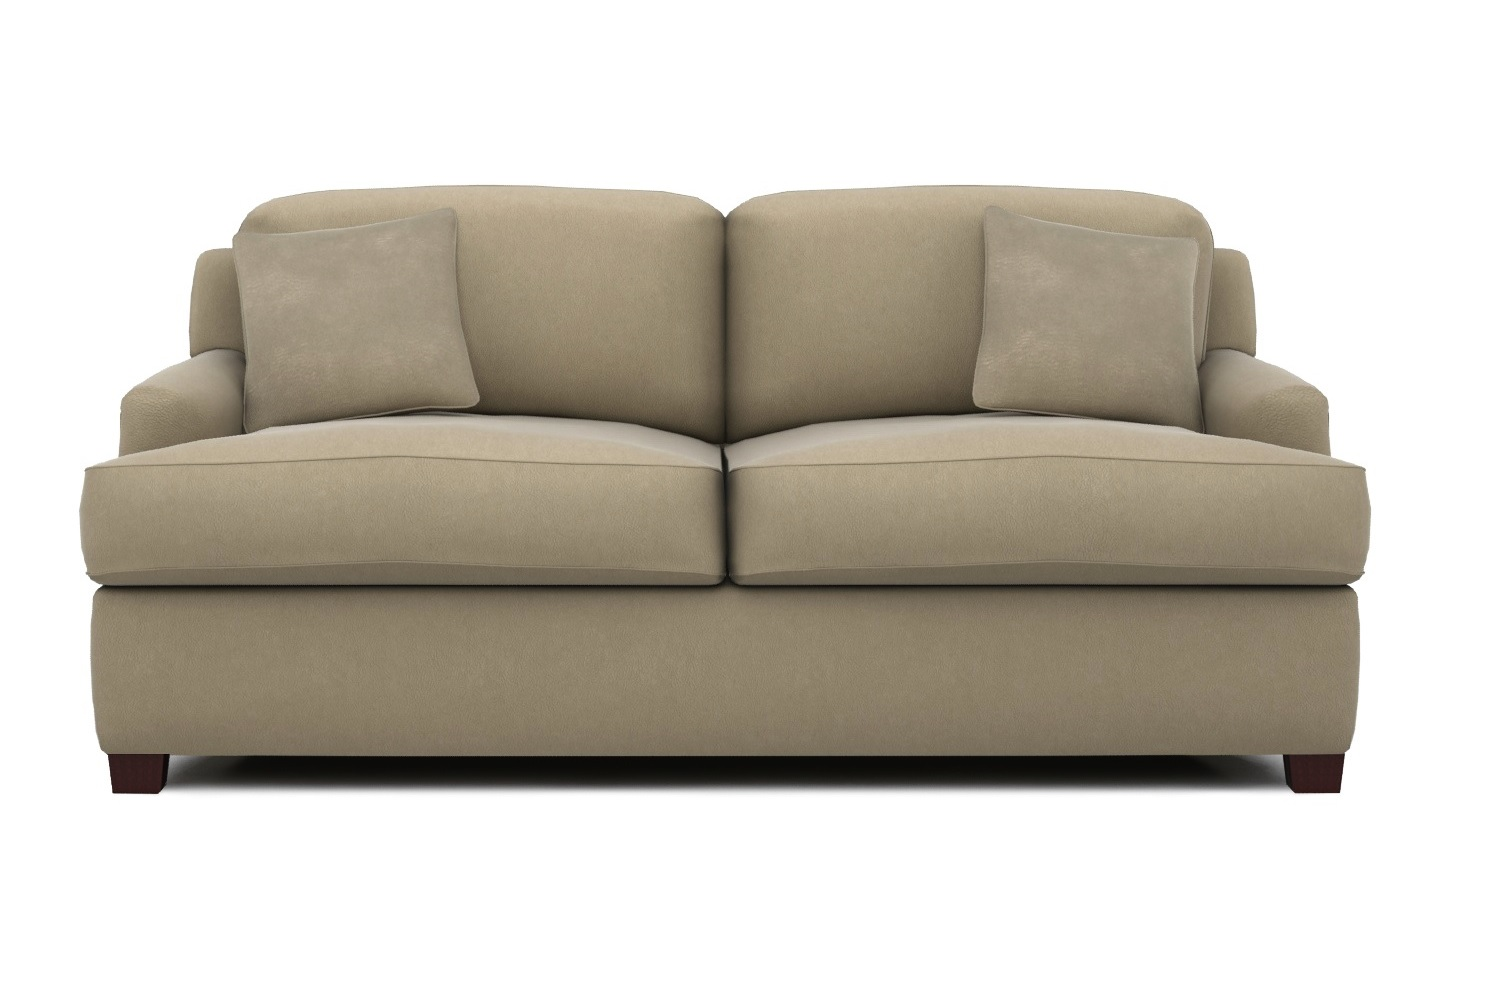 Durable Sofa Bed With Ottoman India Sofas Awesome Most Couches 21 And